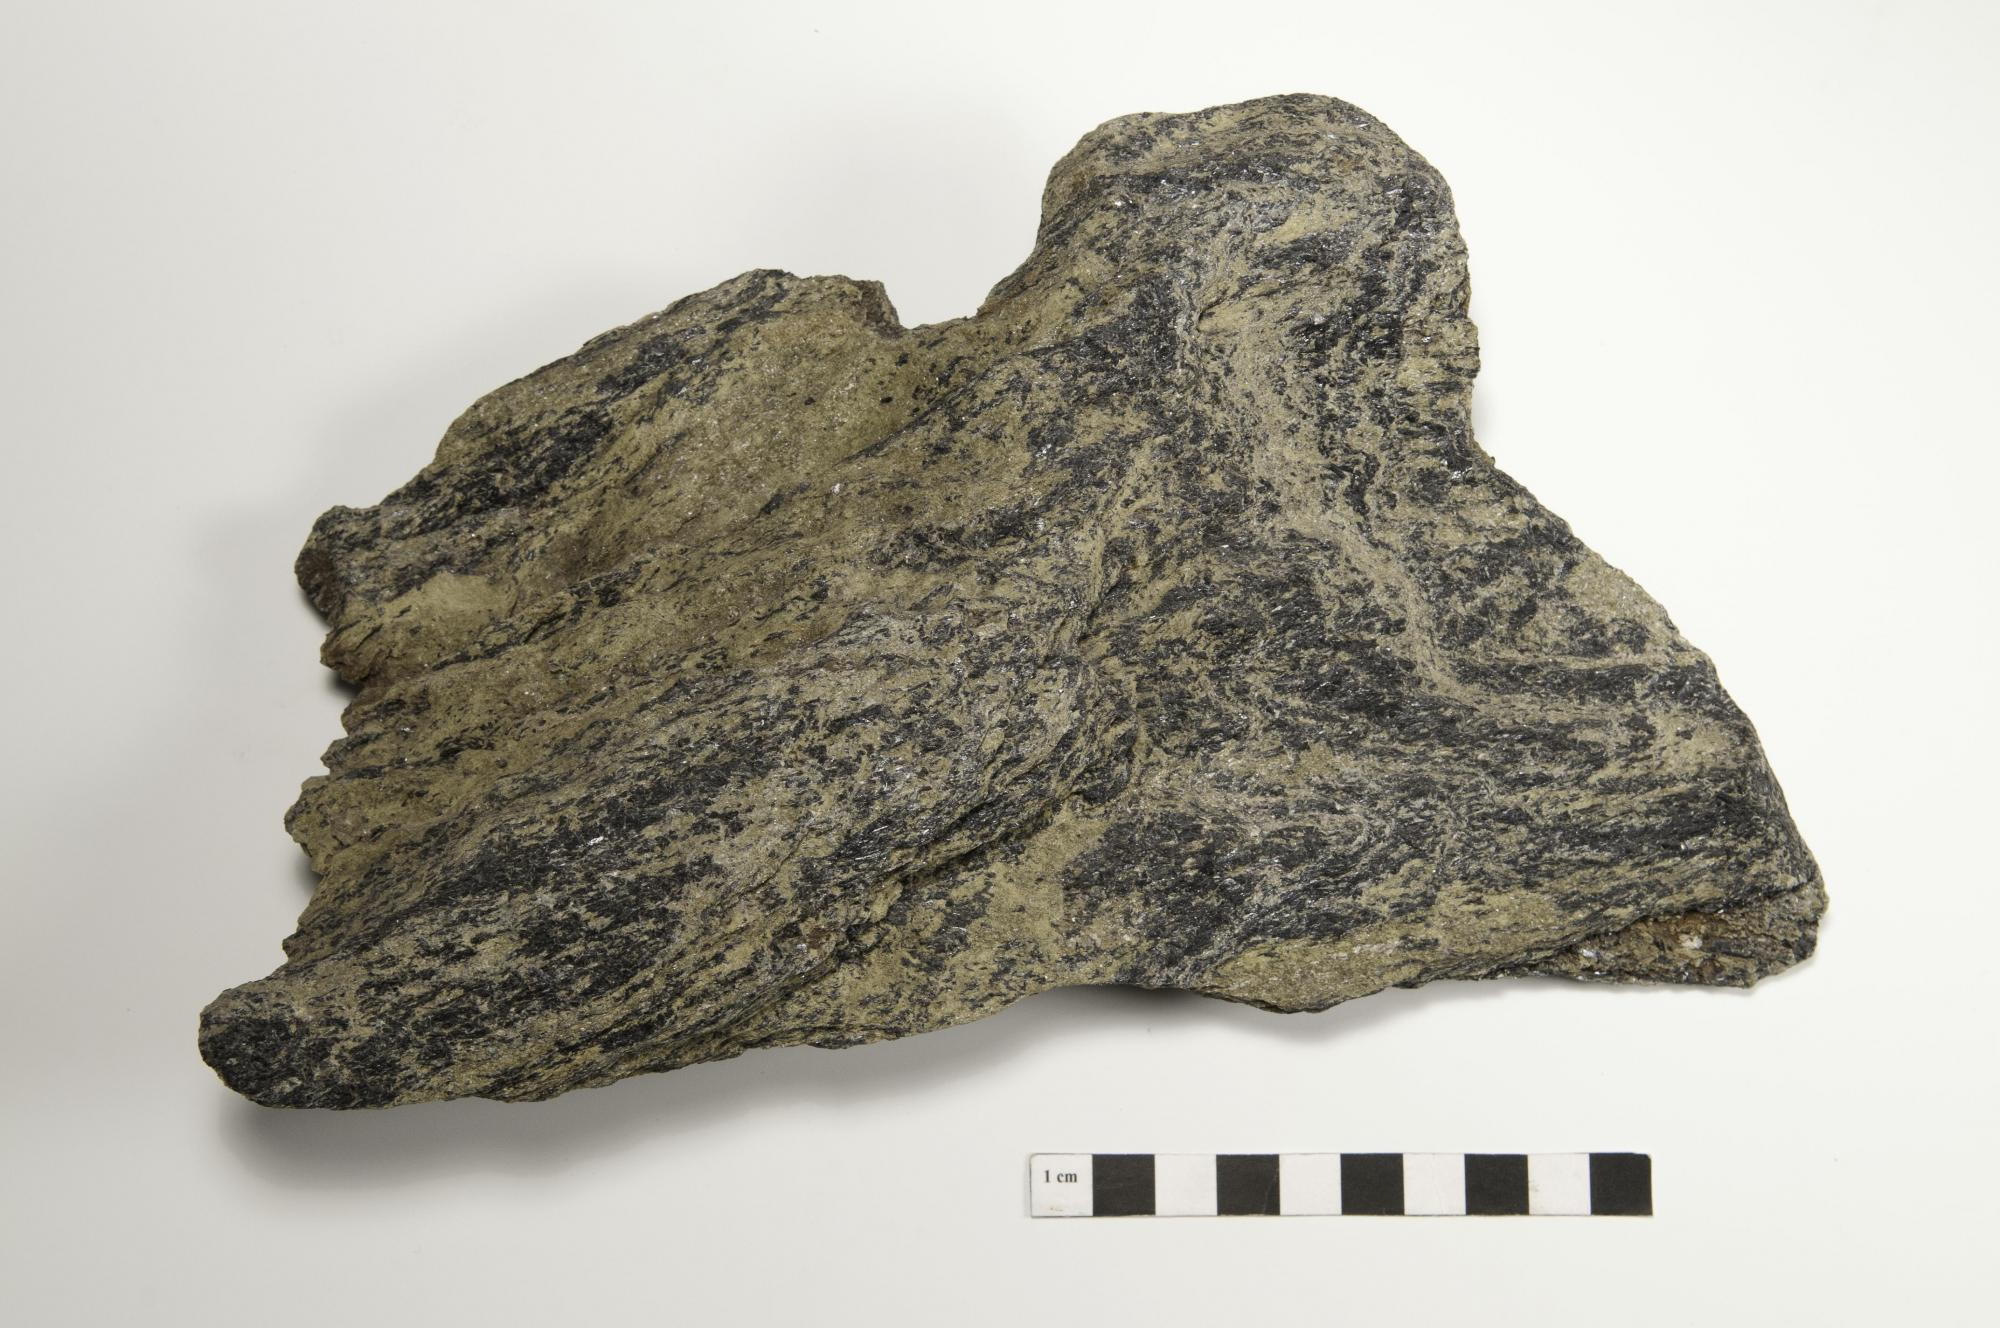 glaucophanite